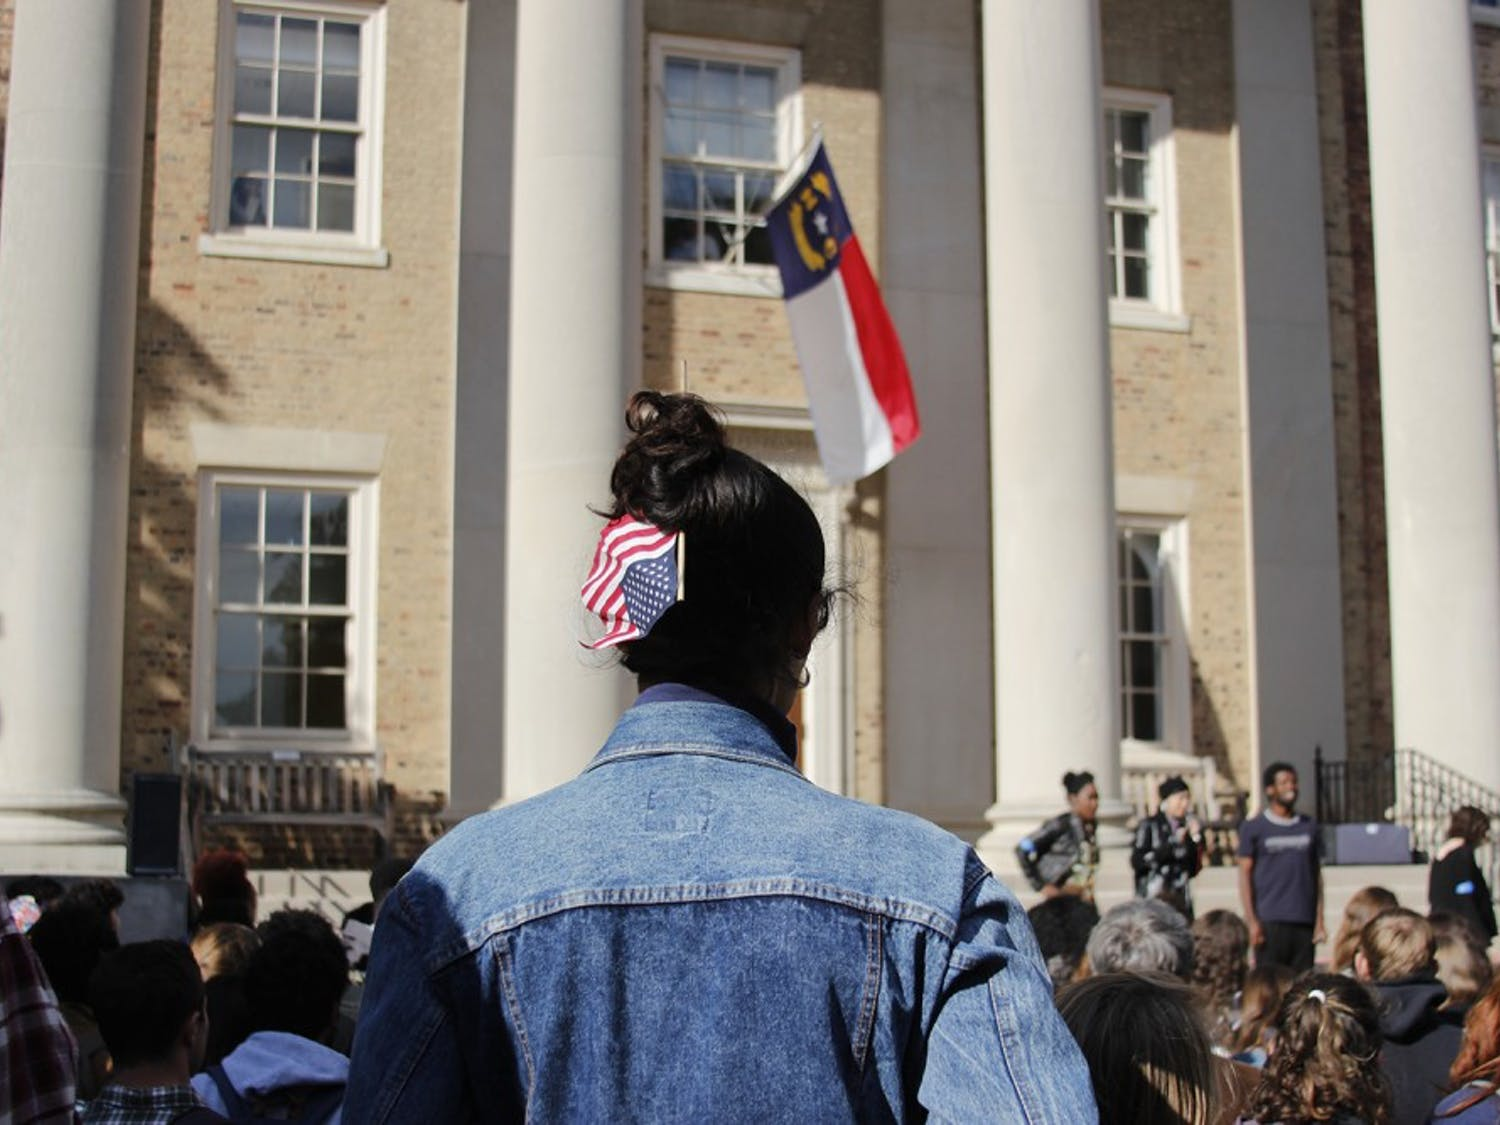 Students gathered on the steps of South Building to create a safe space to talk about the results of the presidential election and the effects of it on minority students. The event began with ground rules and was centered around an open mic. Various students walked around the space with blue armbands to act as marshals for safety. A safe space was offered in the Campus Y for those who felt unsafe.